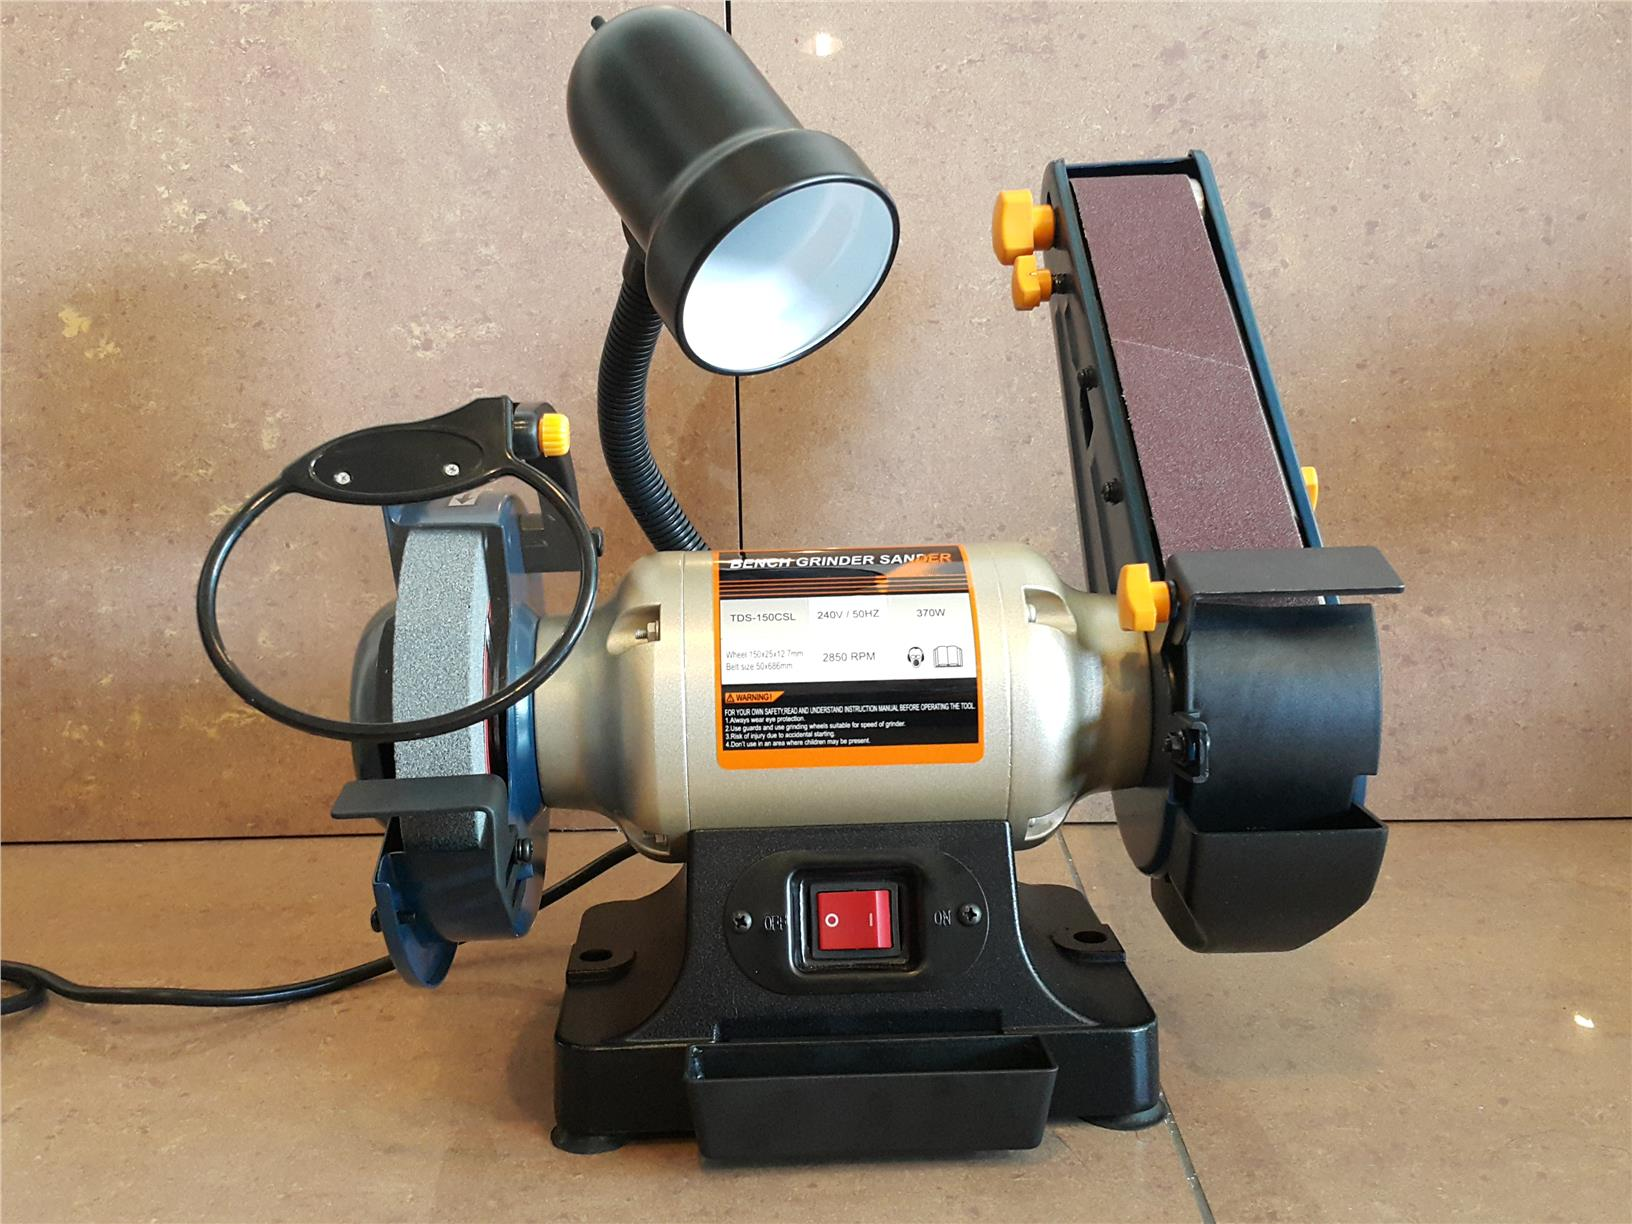 "TDS-150CSL 6"" Grinder Sander with Work Light ID448754"